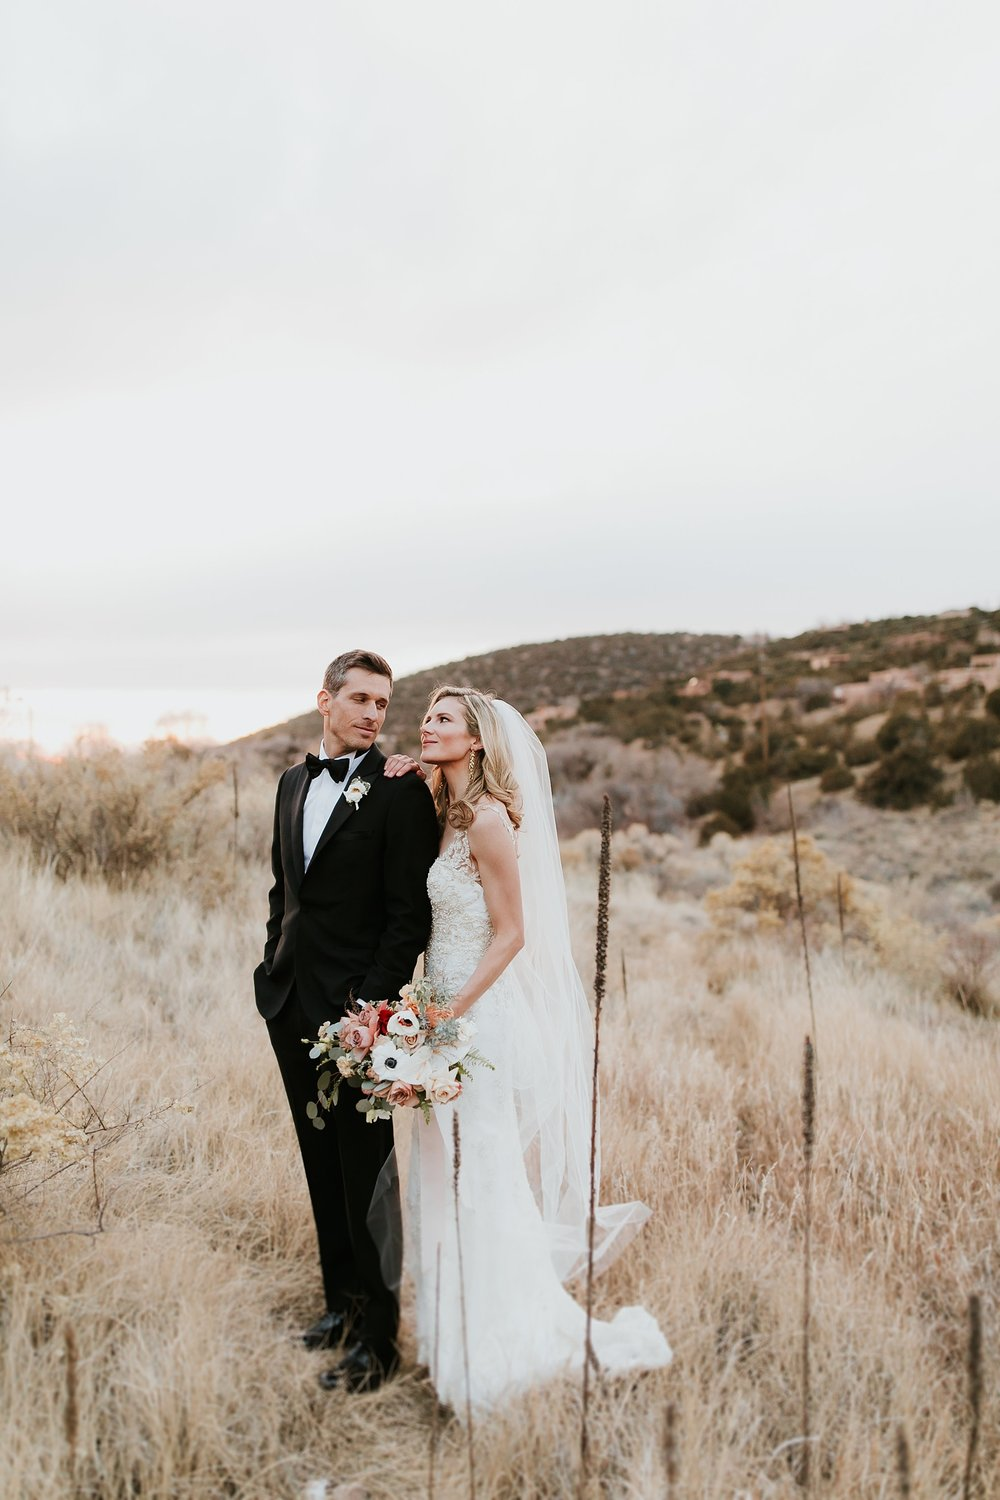 Alicia+lucia+photography+-+albuquerque+wedding+photographer+-+santa+fe+wedding+photography+-+new+mexico+wedding+photographer+-+la+fonda+wedding+-+la+fonda+winter+wedding_0098.jpg